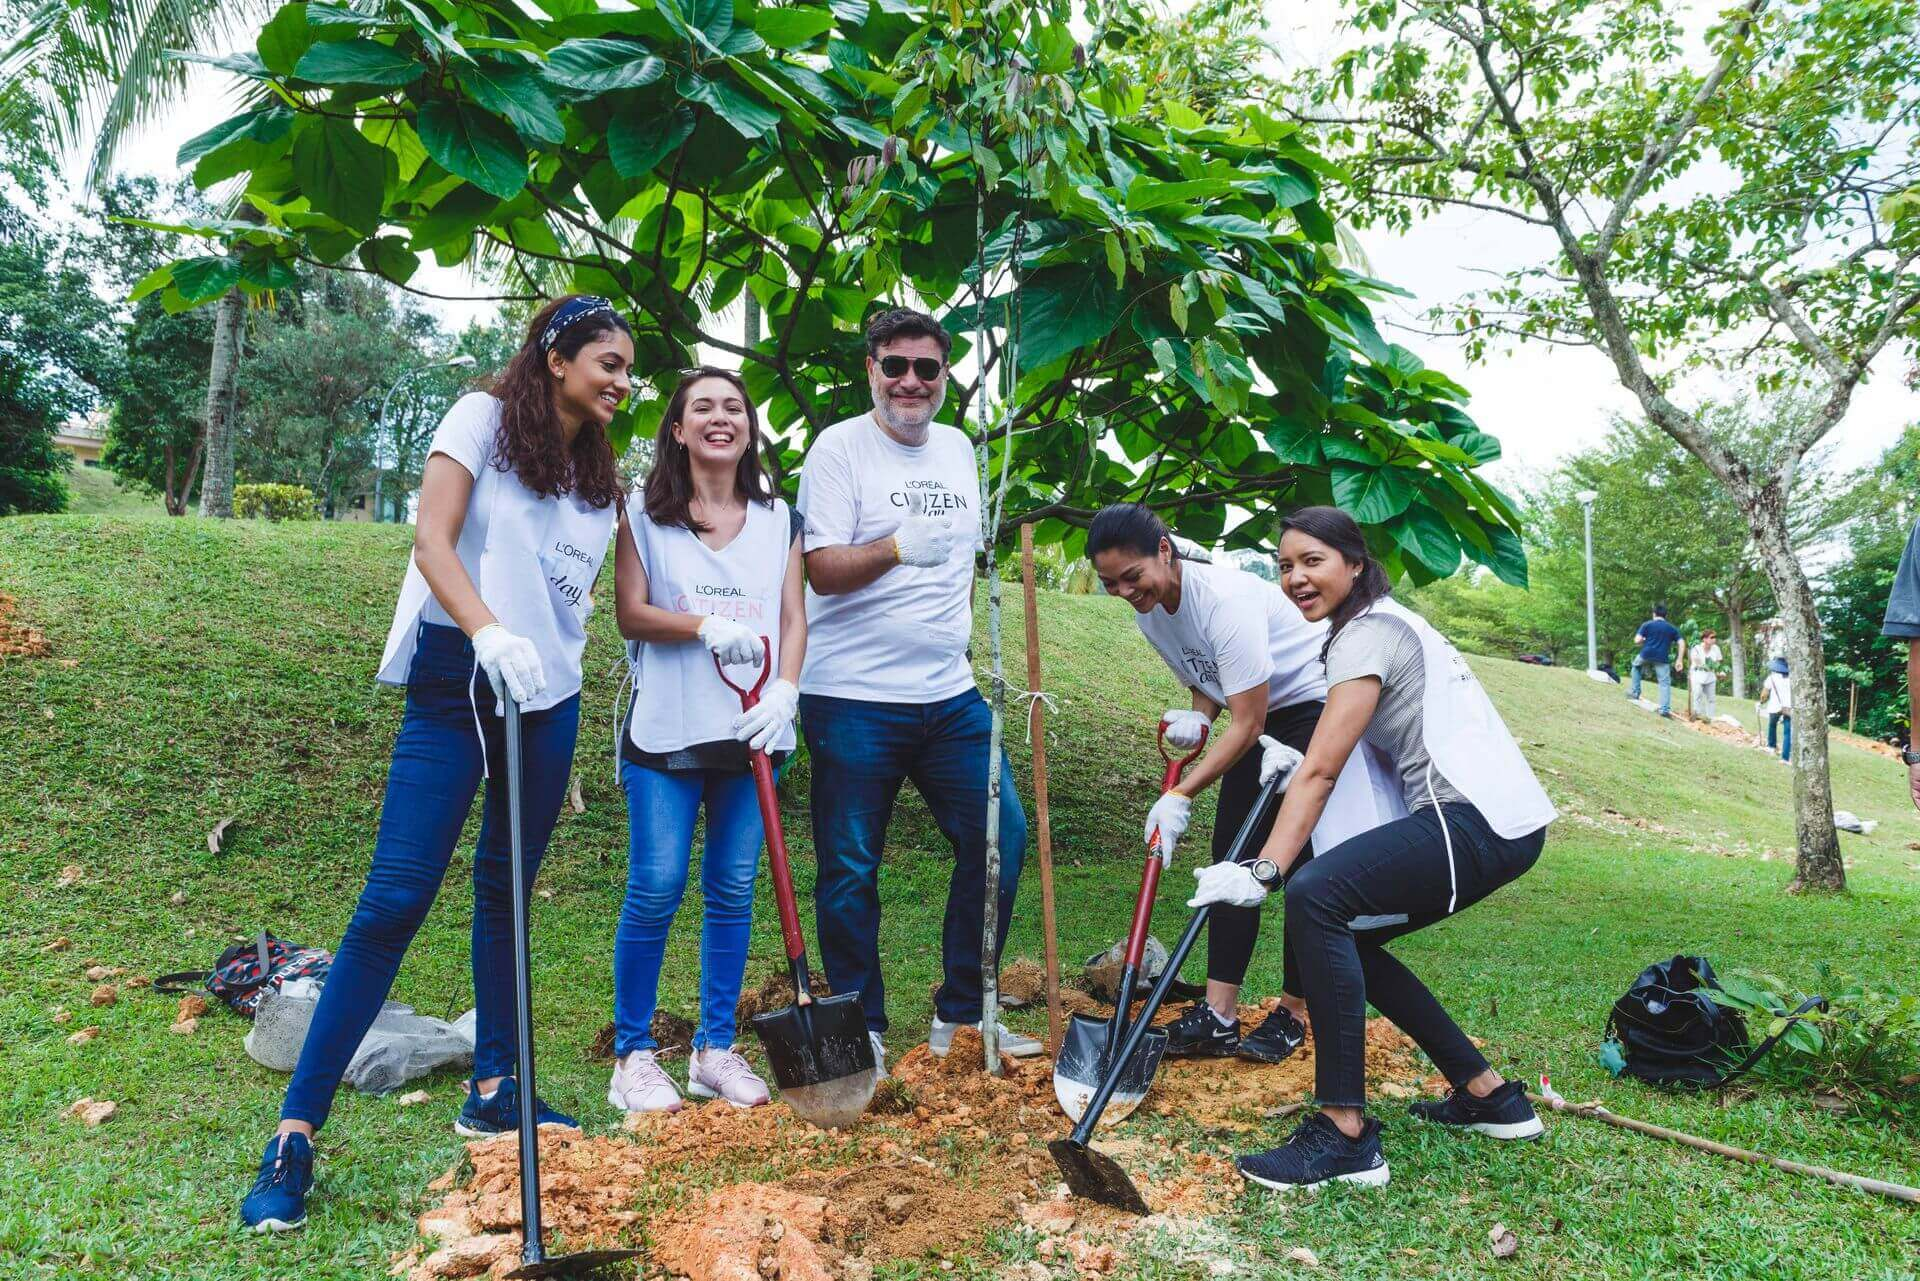 Our country manager, Malek together with L'Oréal employees planting trees for citizen day.